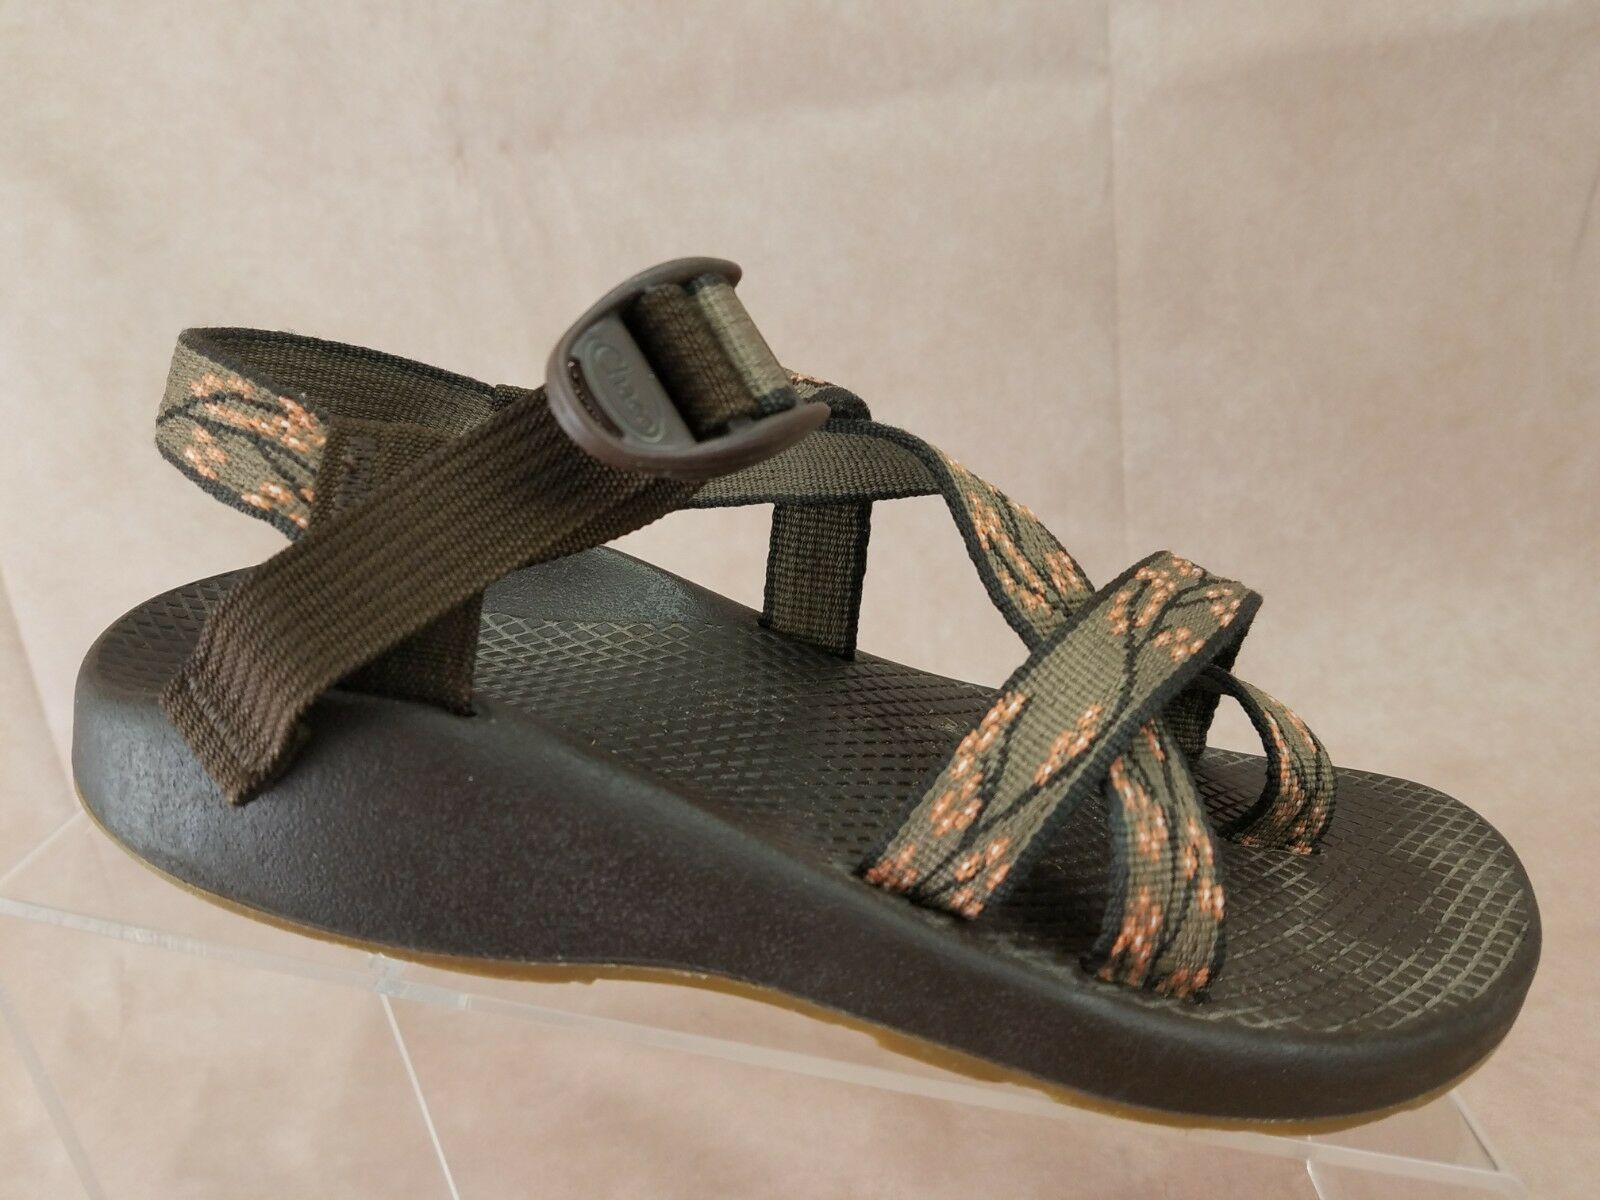 Chaco Z/2 Classic Sandal Size 7 7 Size Womens Brown Hiking Outdoor Shoe 824eae